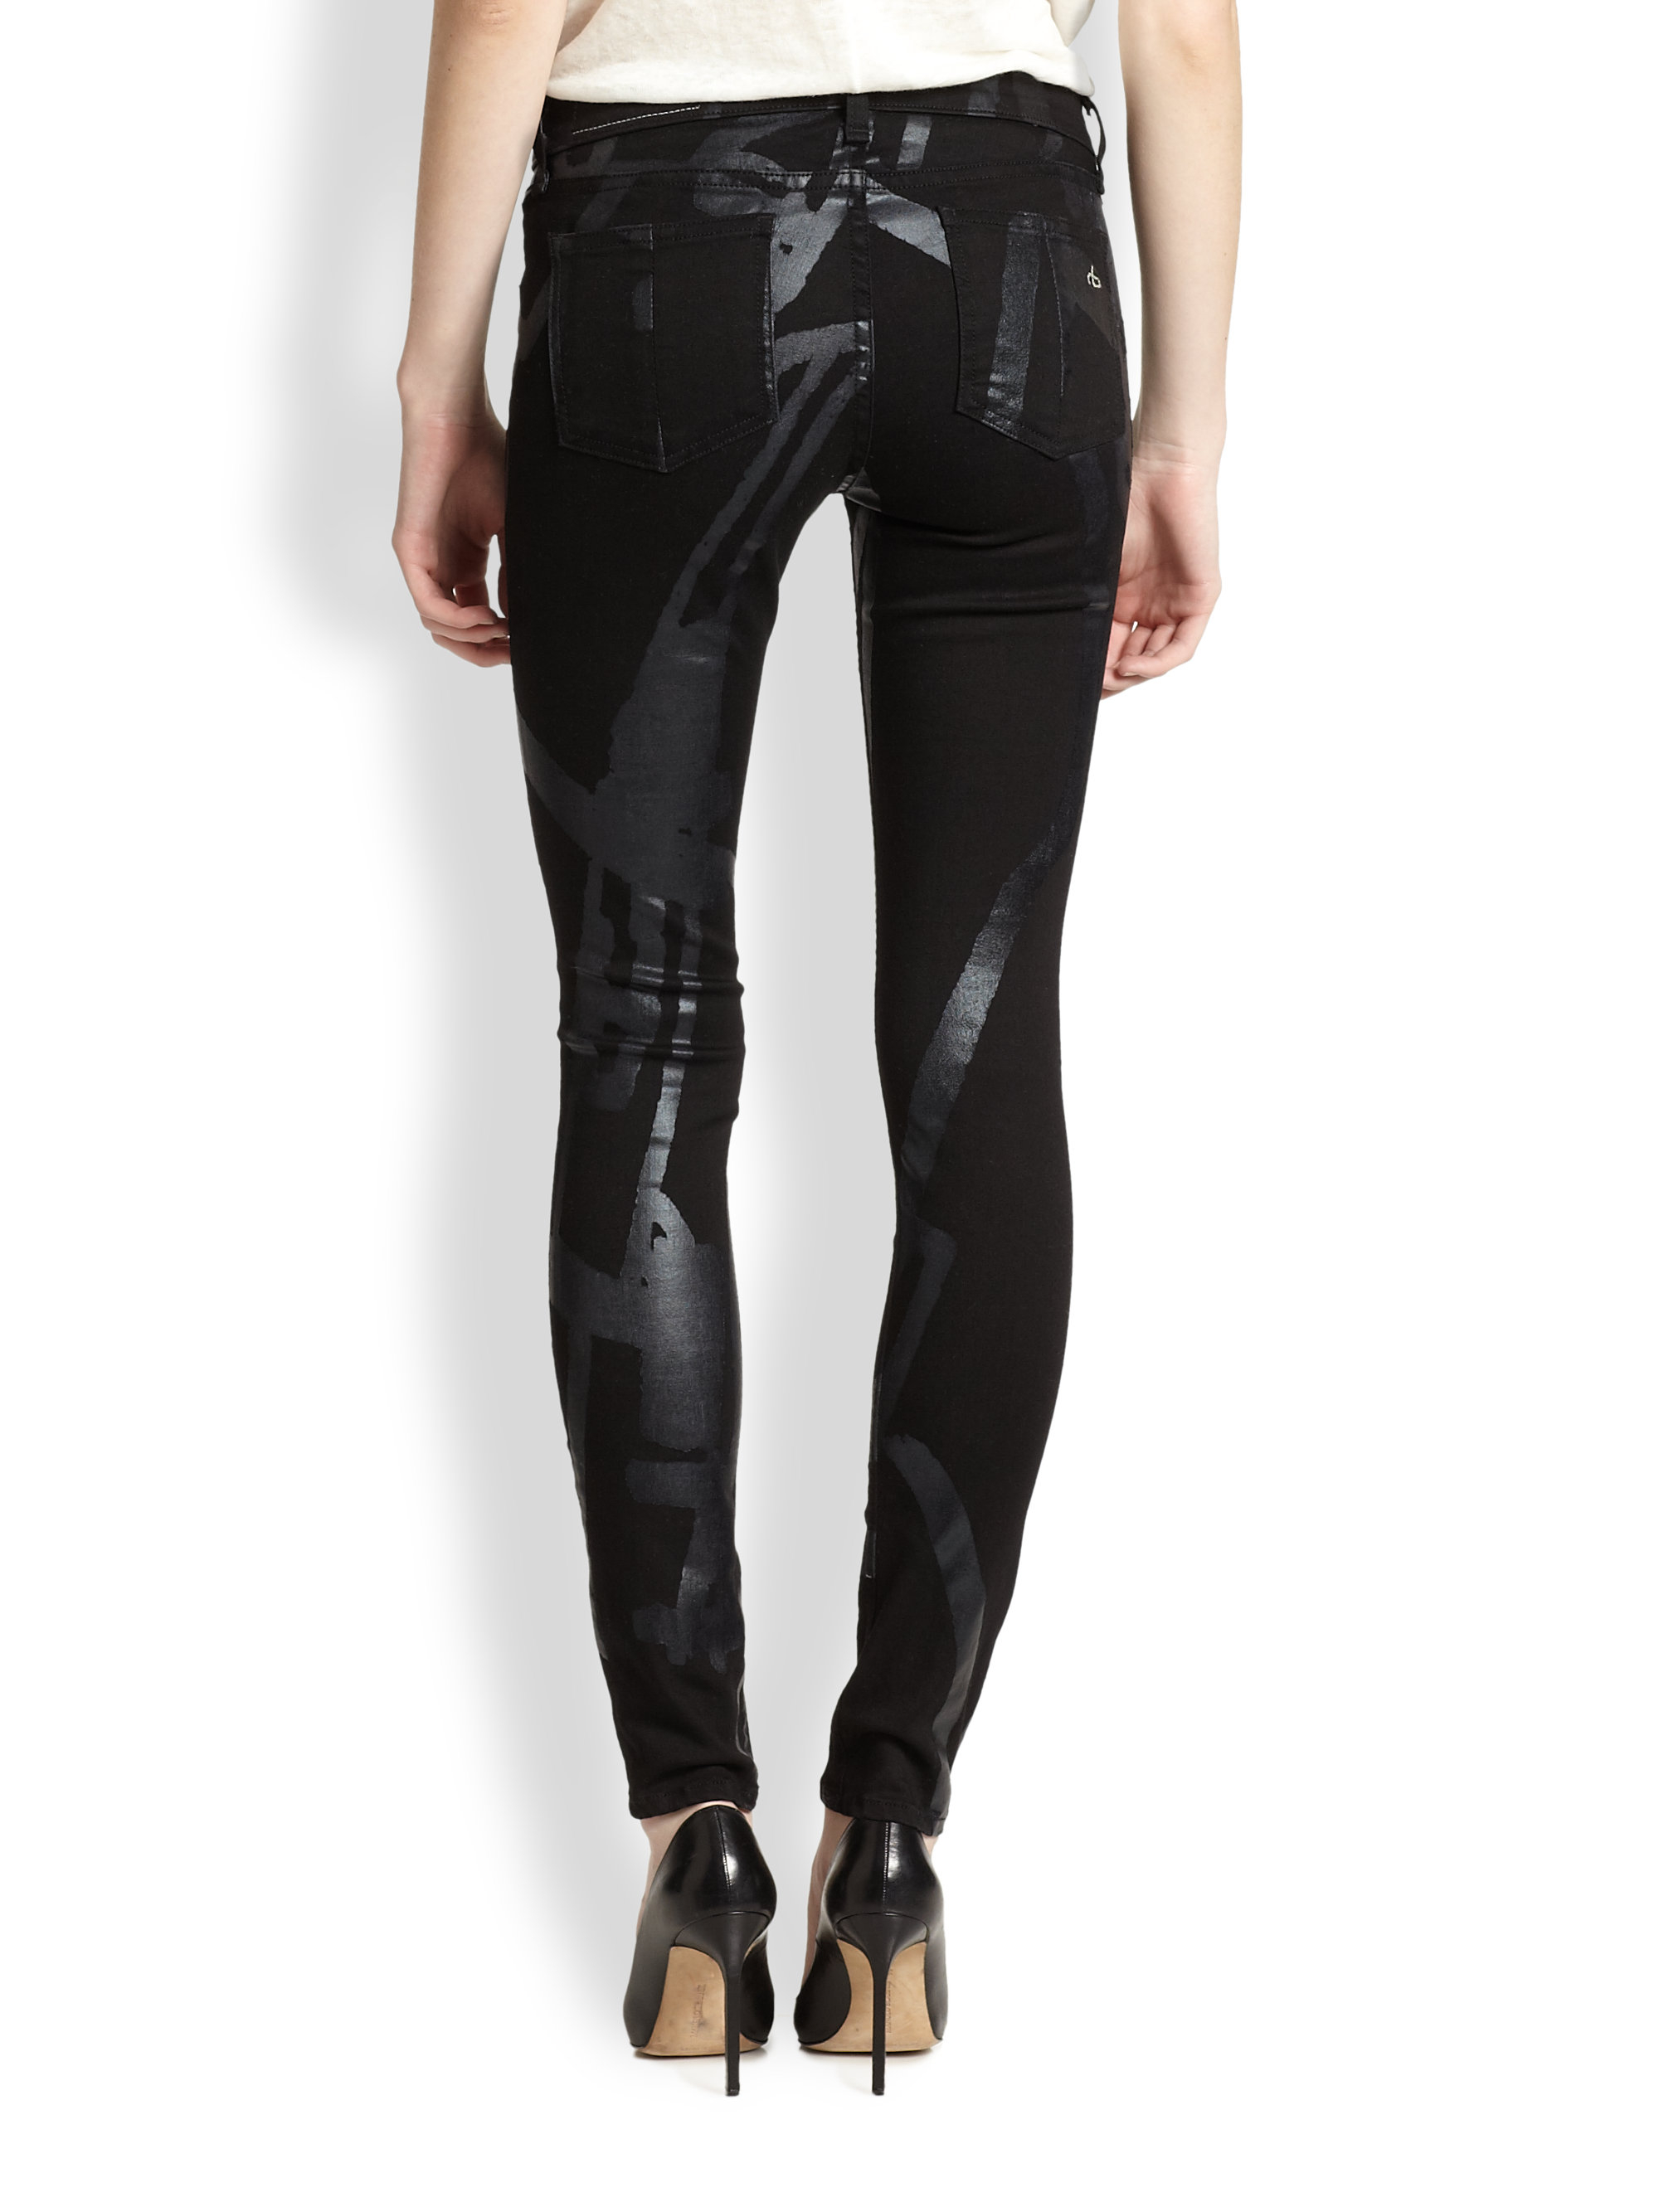 Womens Black Ripped Skinny Jeans